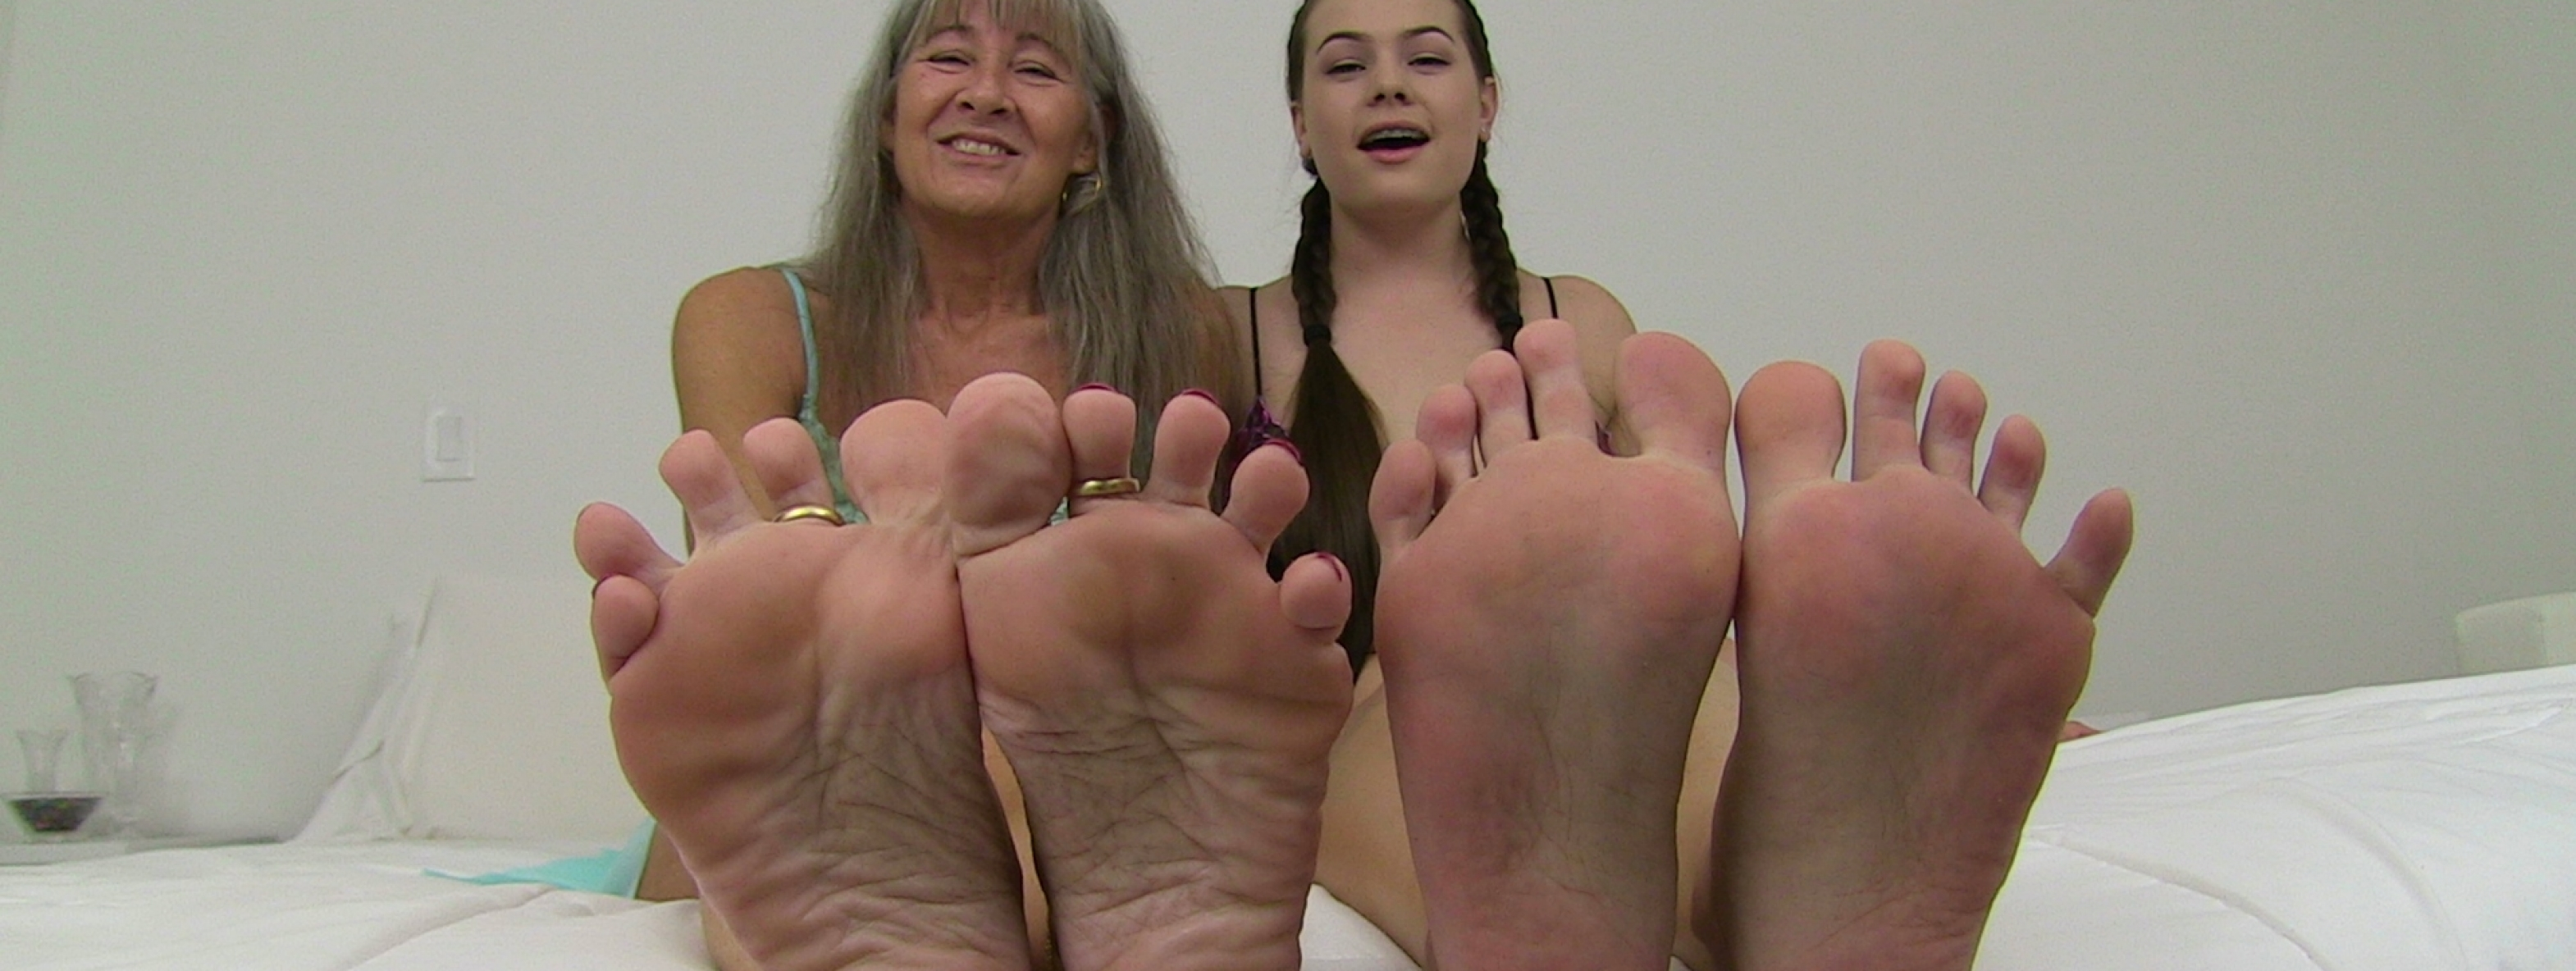 content/worship_our_feet_slave/8.jpg